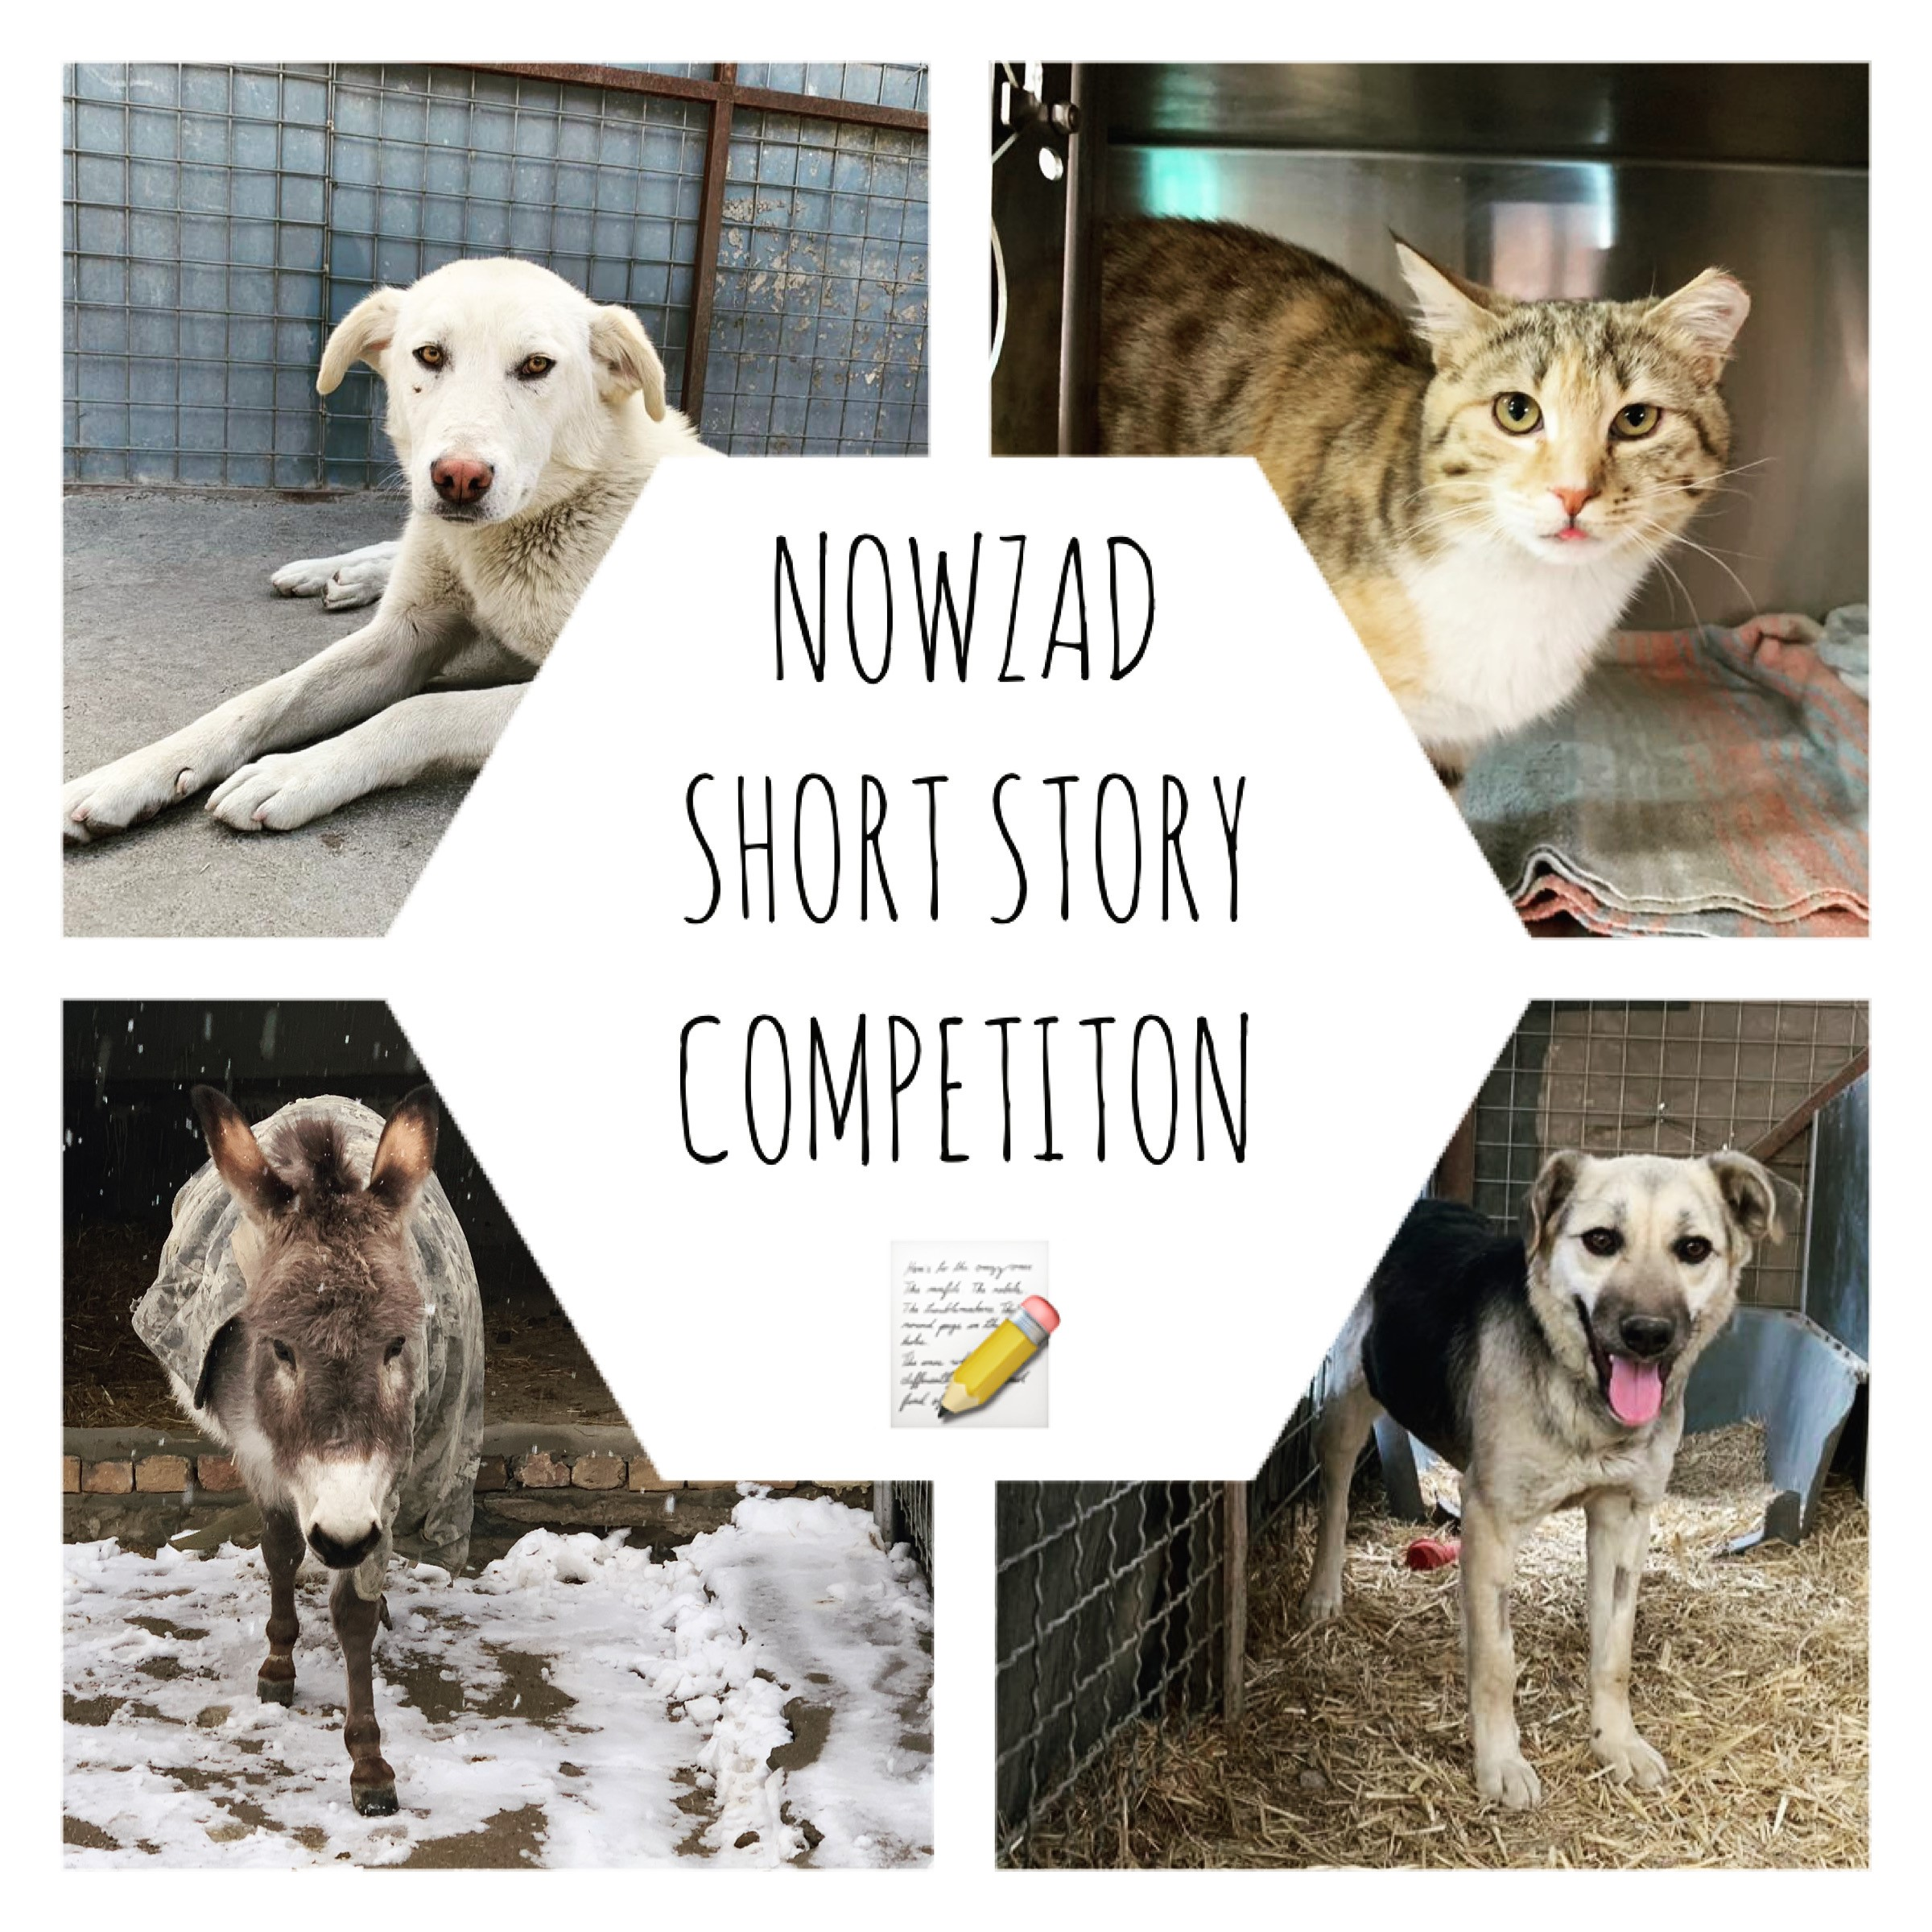 Nowzad Short Story Competition Winners!